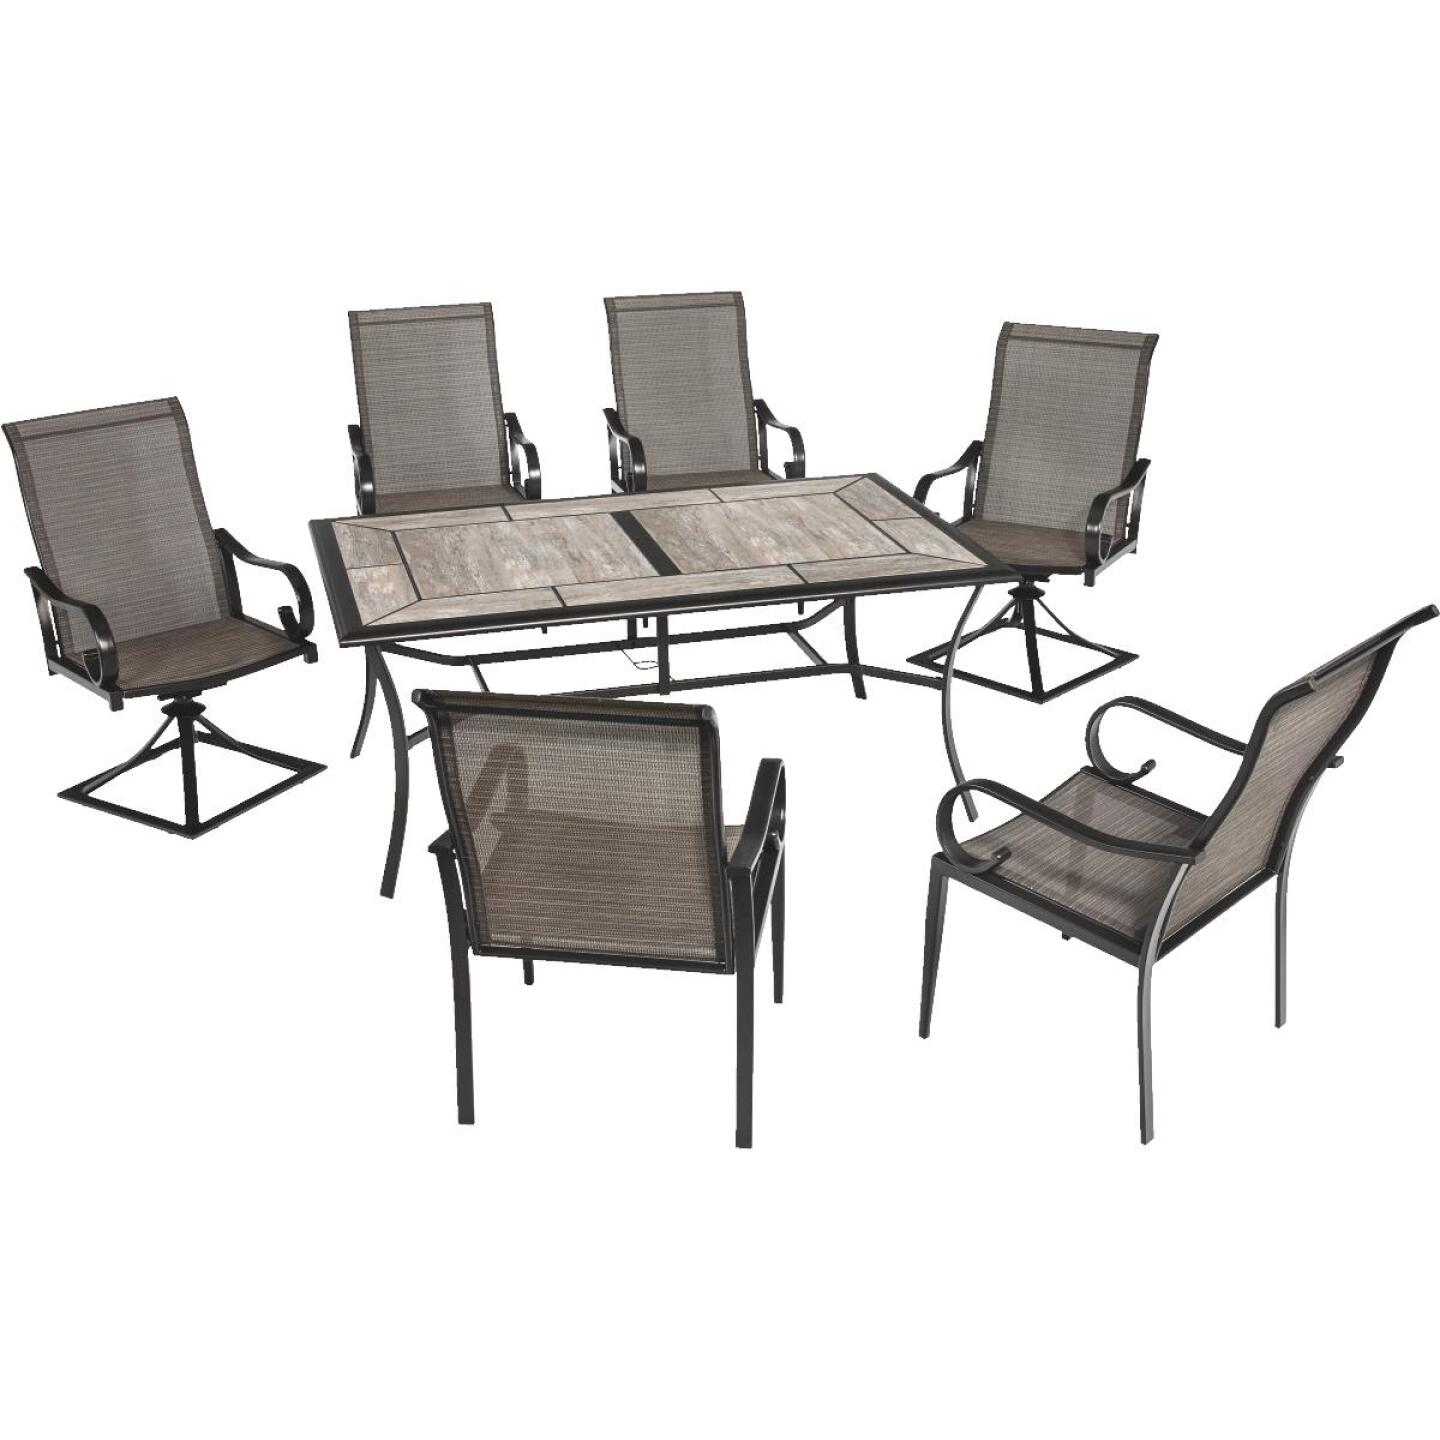 Outdoor Expressions Berkshire 7-Piece Dining Set Image 131